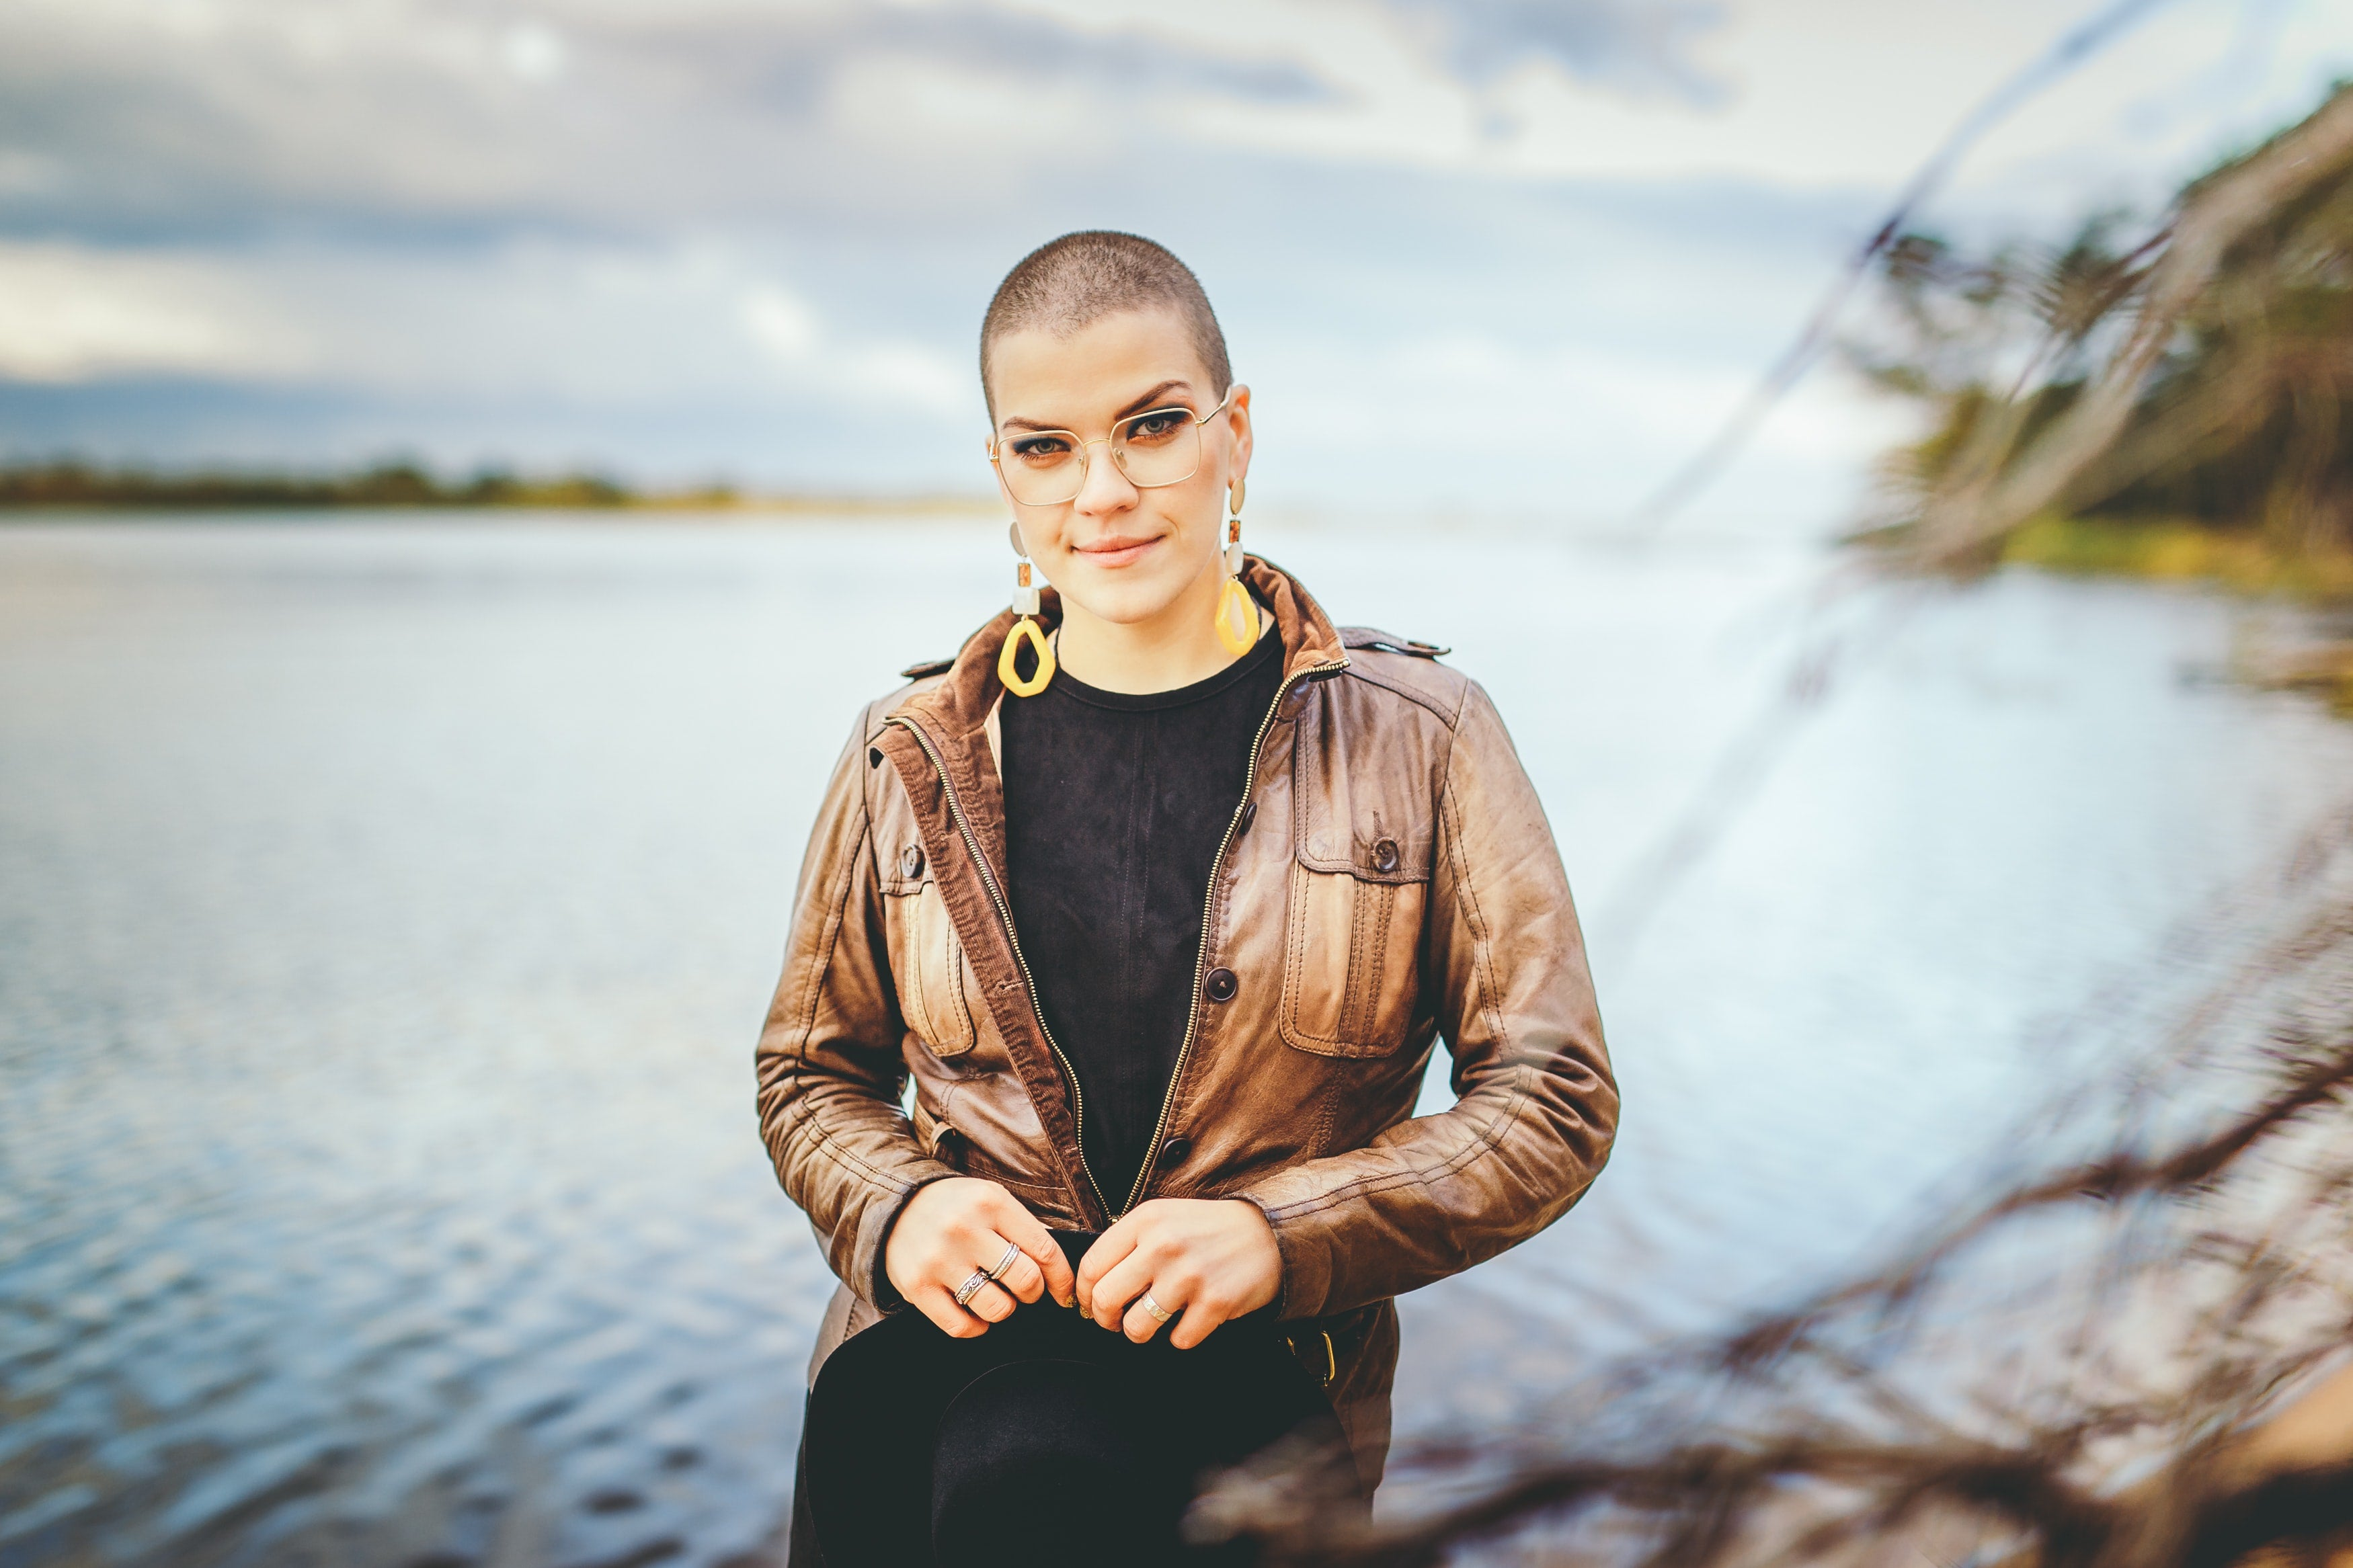 Woman with buzzcut in front of lake